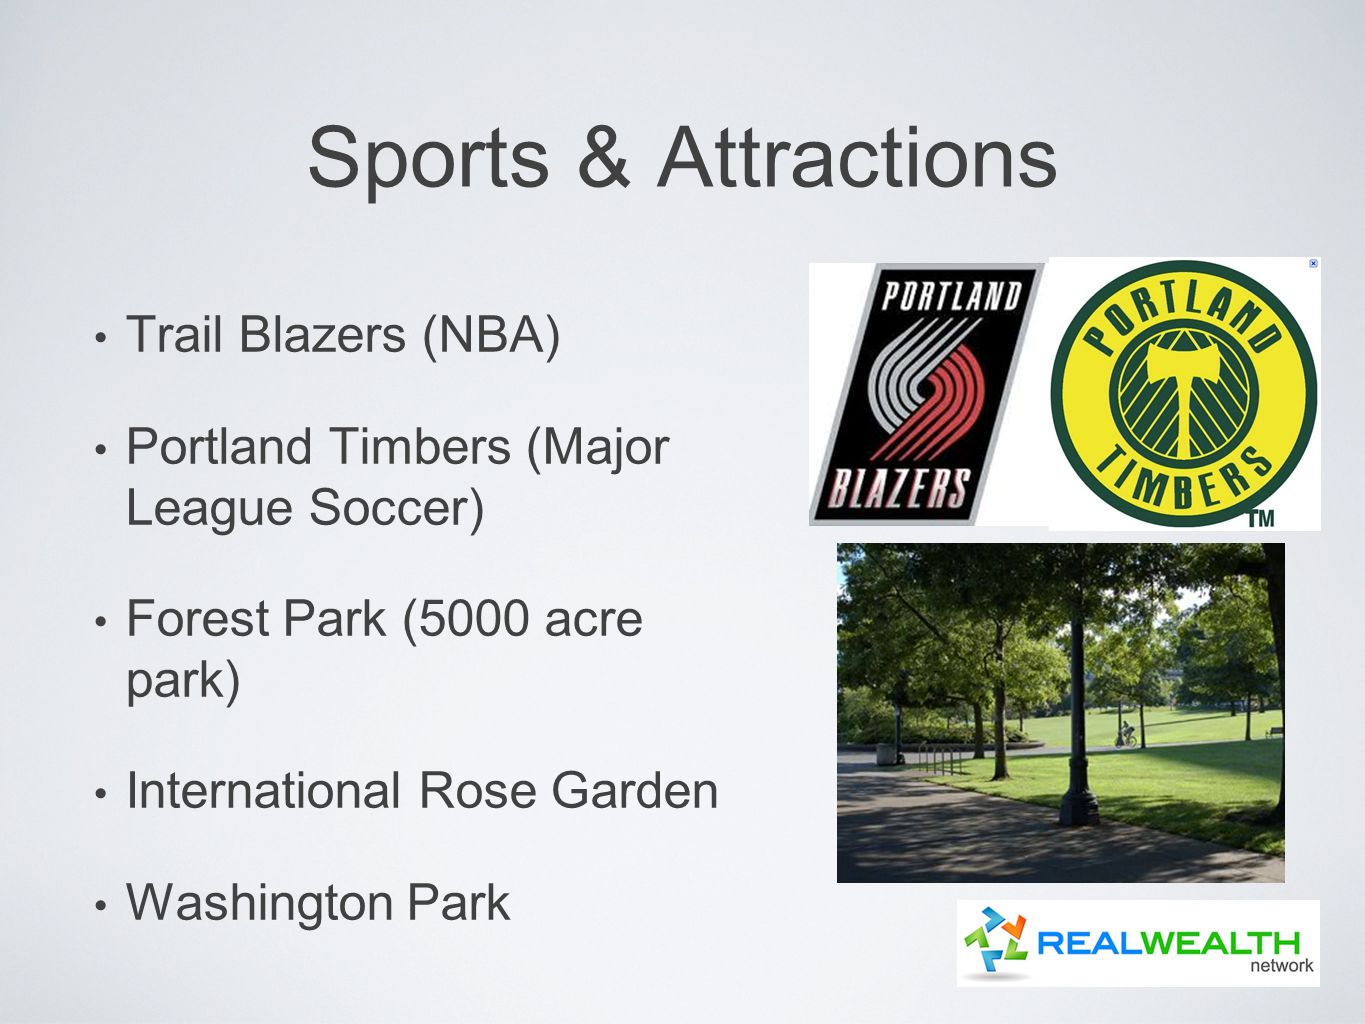 Sports & Attractions Trail Blazers (NBA) Portland Timbers (Major League Soccer) Forest Park (5000 acre park) International Rose Garden Washington Park